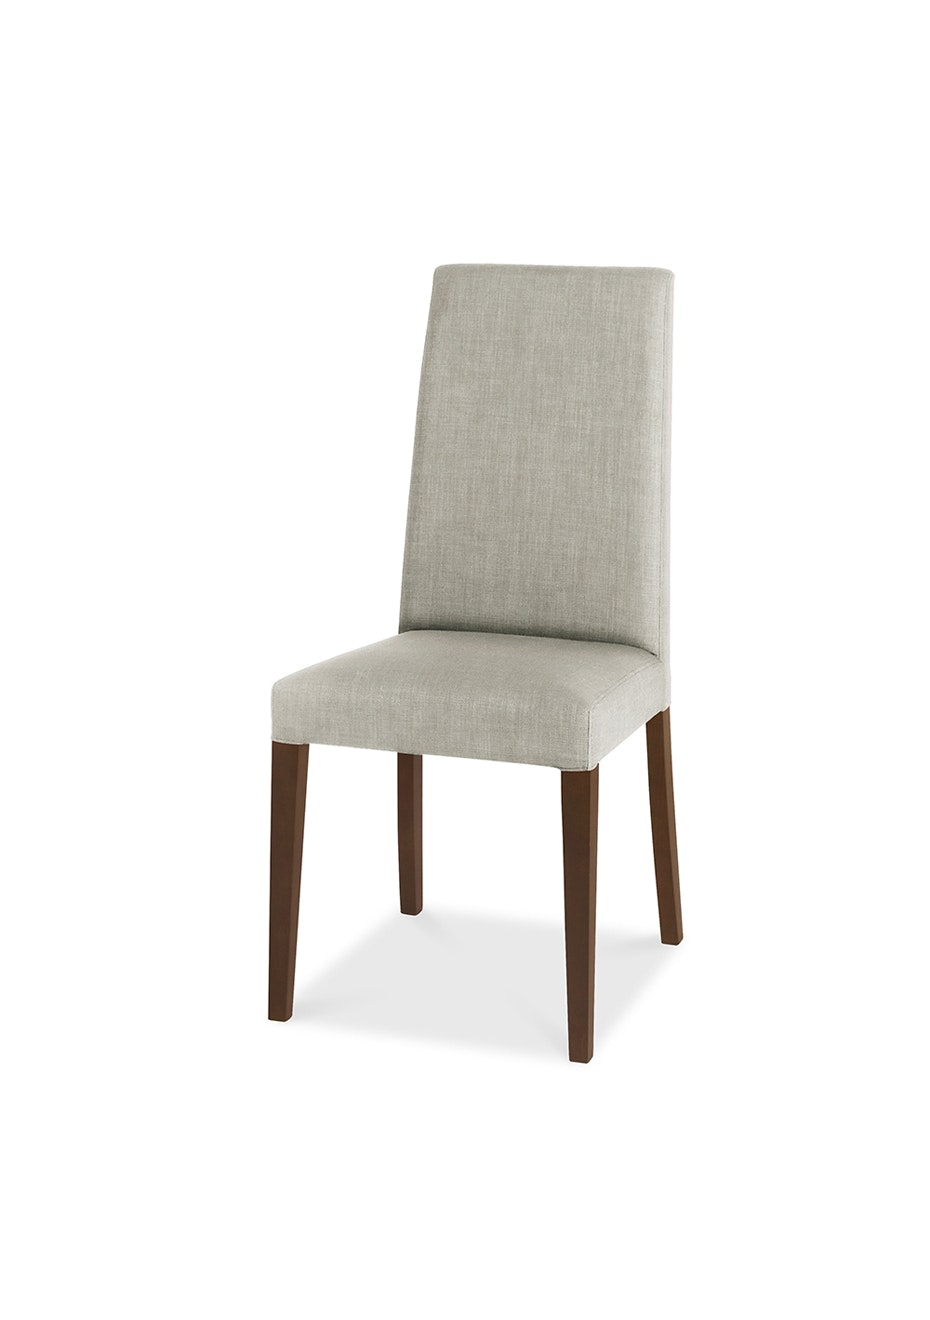 Furniture By Design - Miles Chair- Walnut and Linen